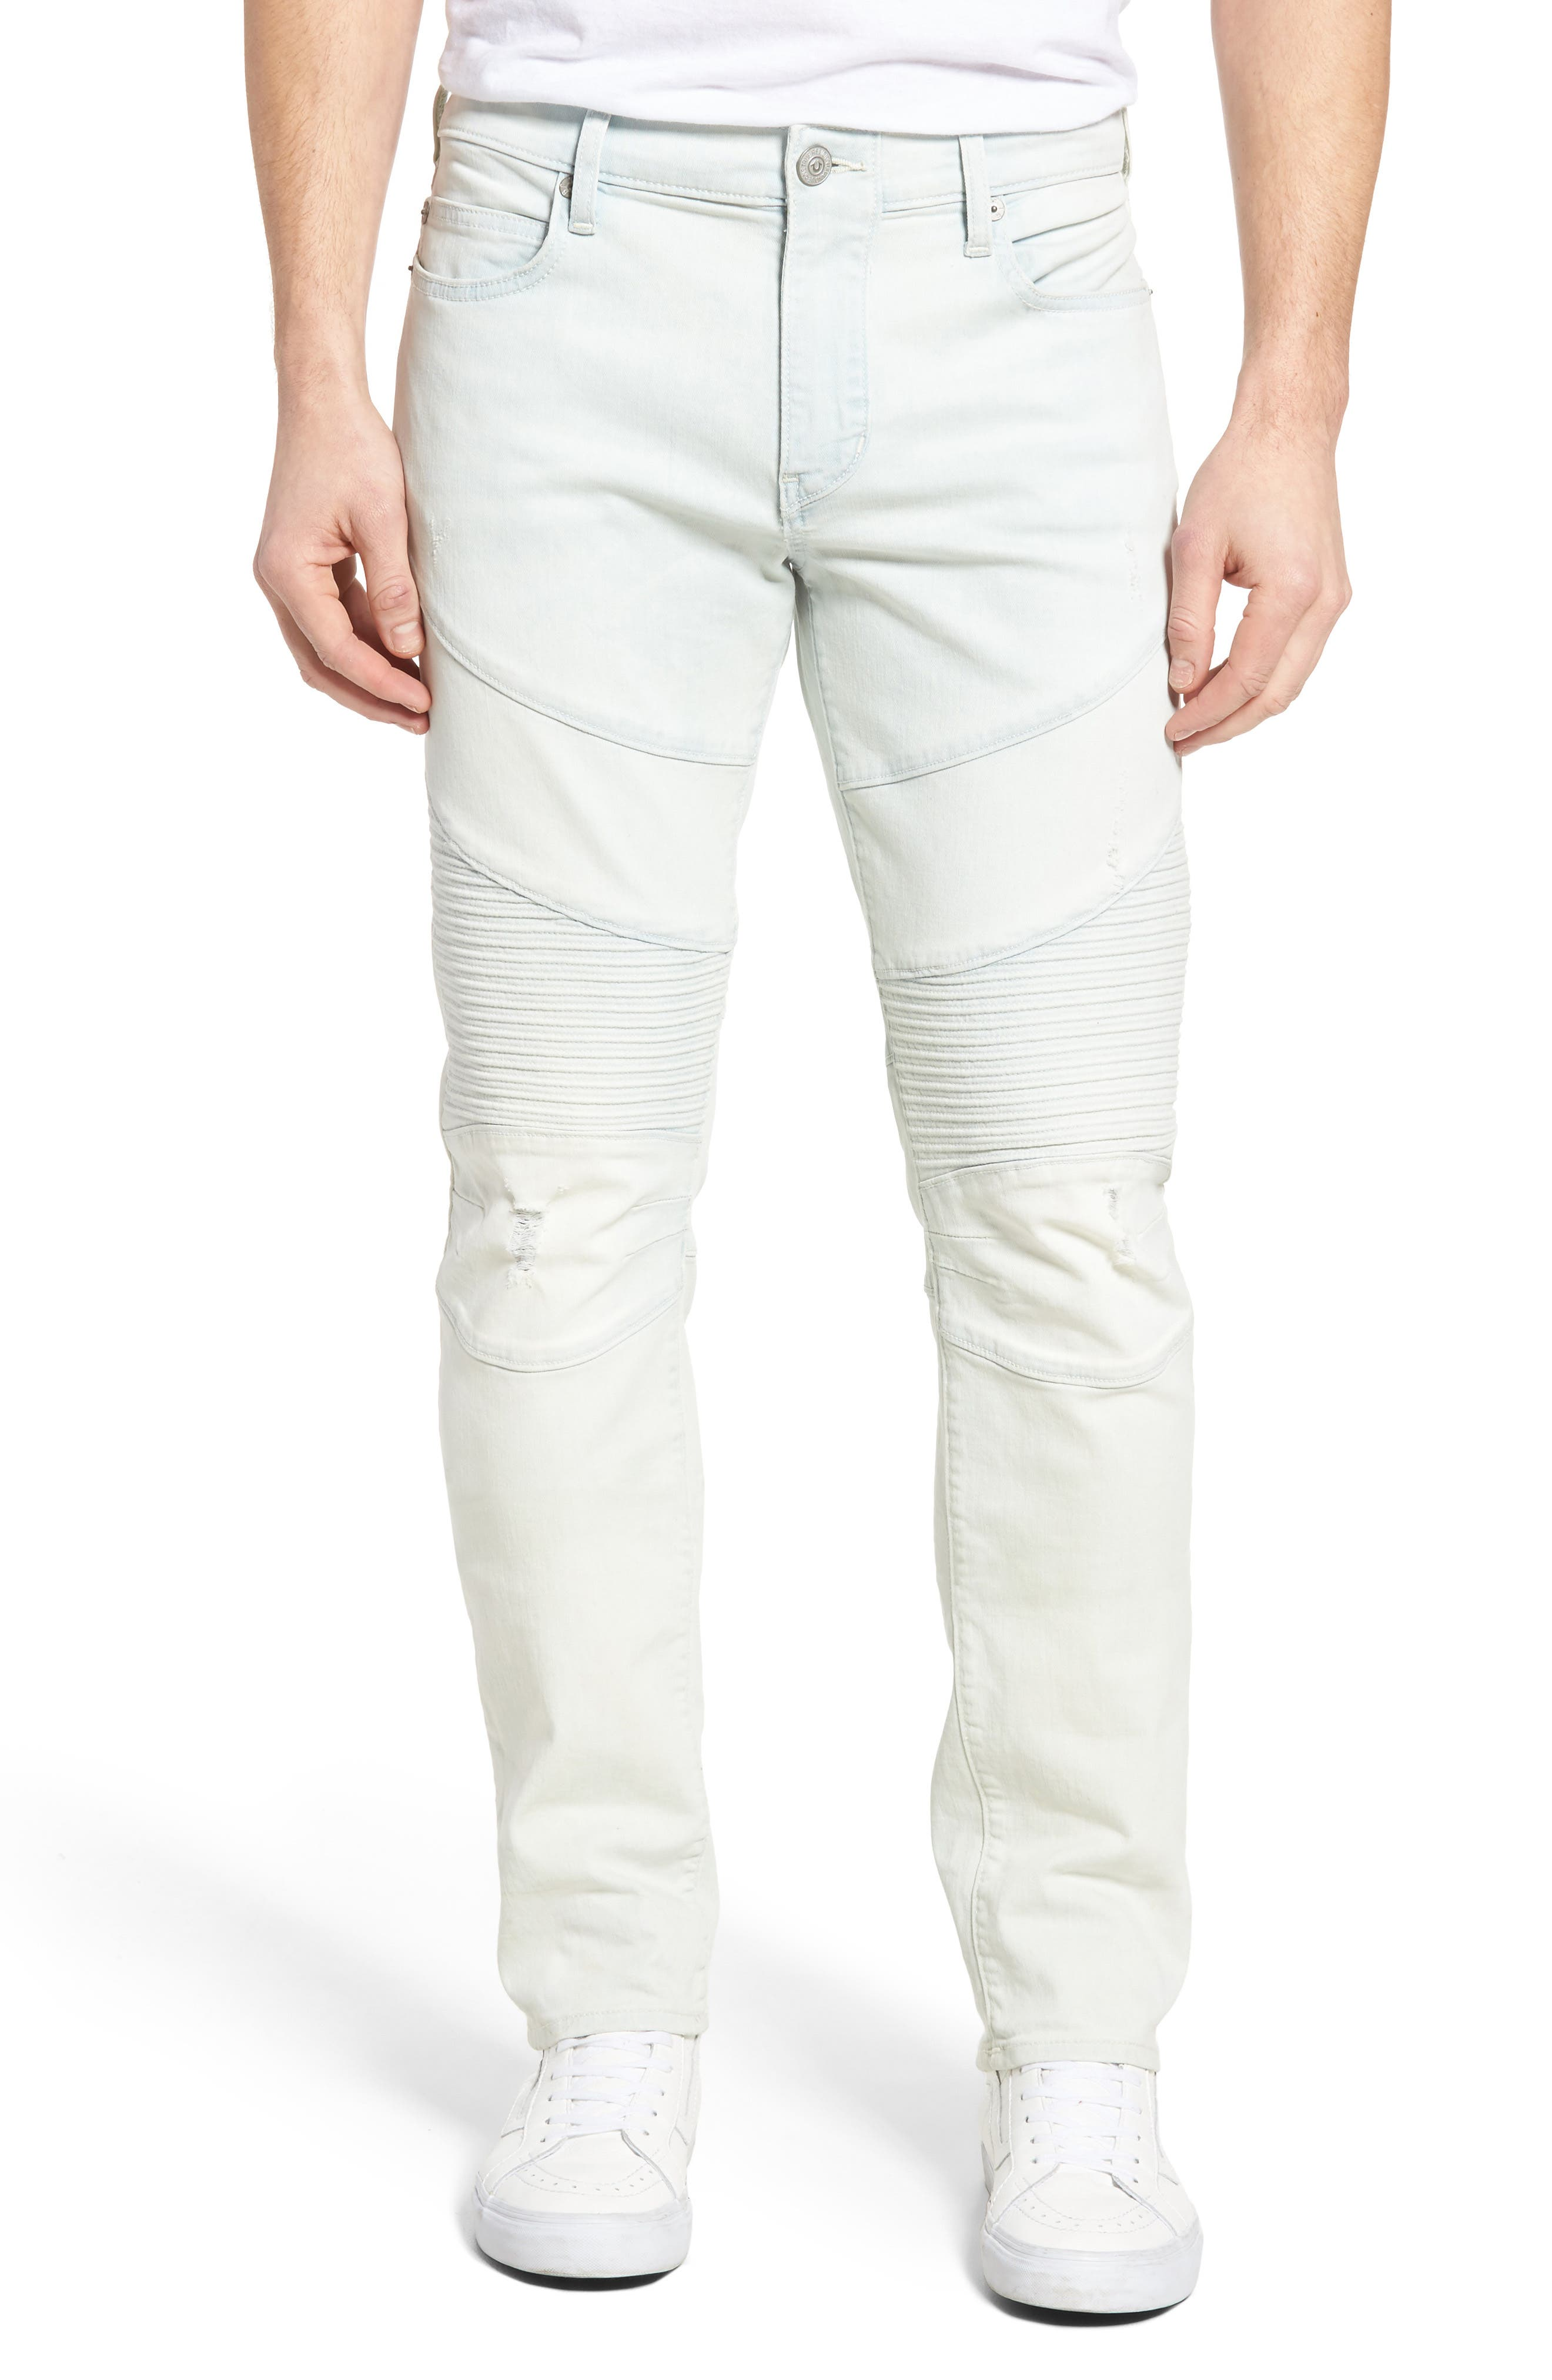 Rocco Skinny Fit Moto Jeans,                         Main,                         color, 401